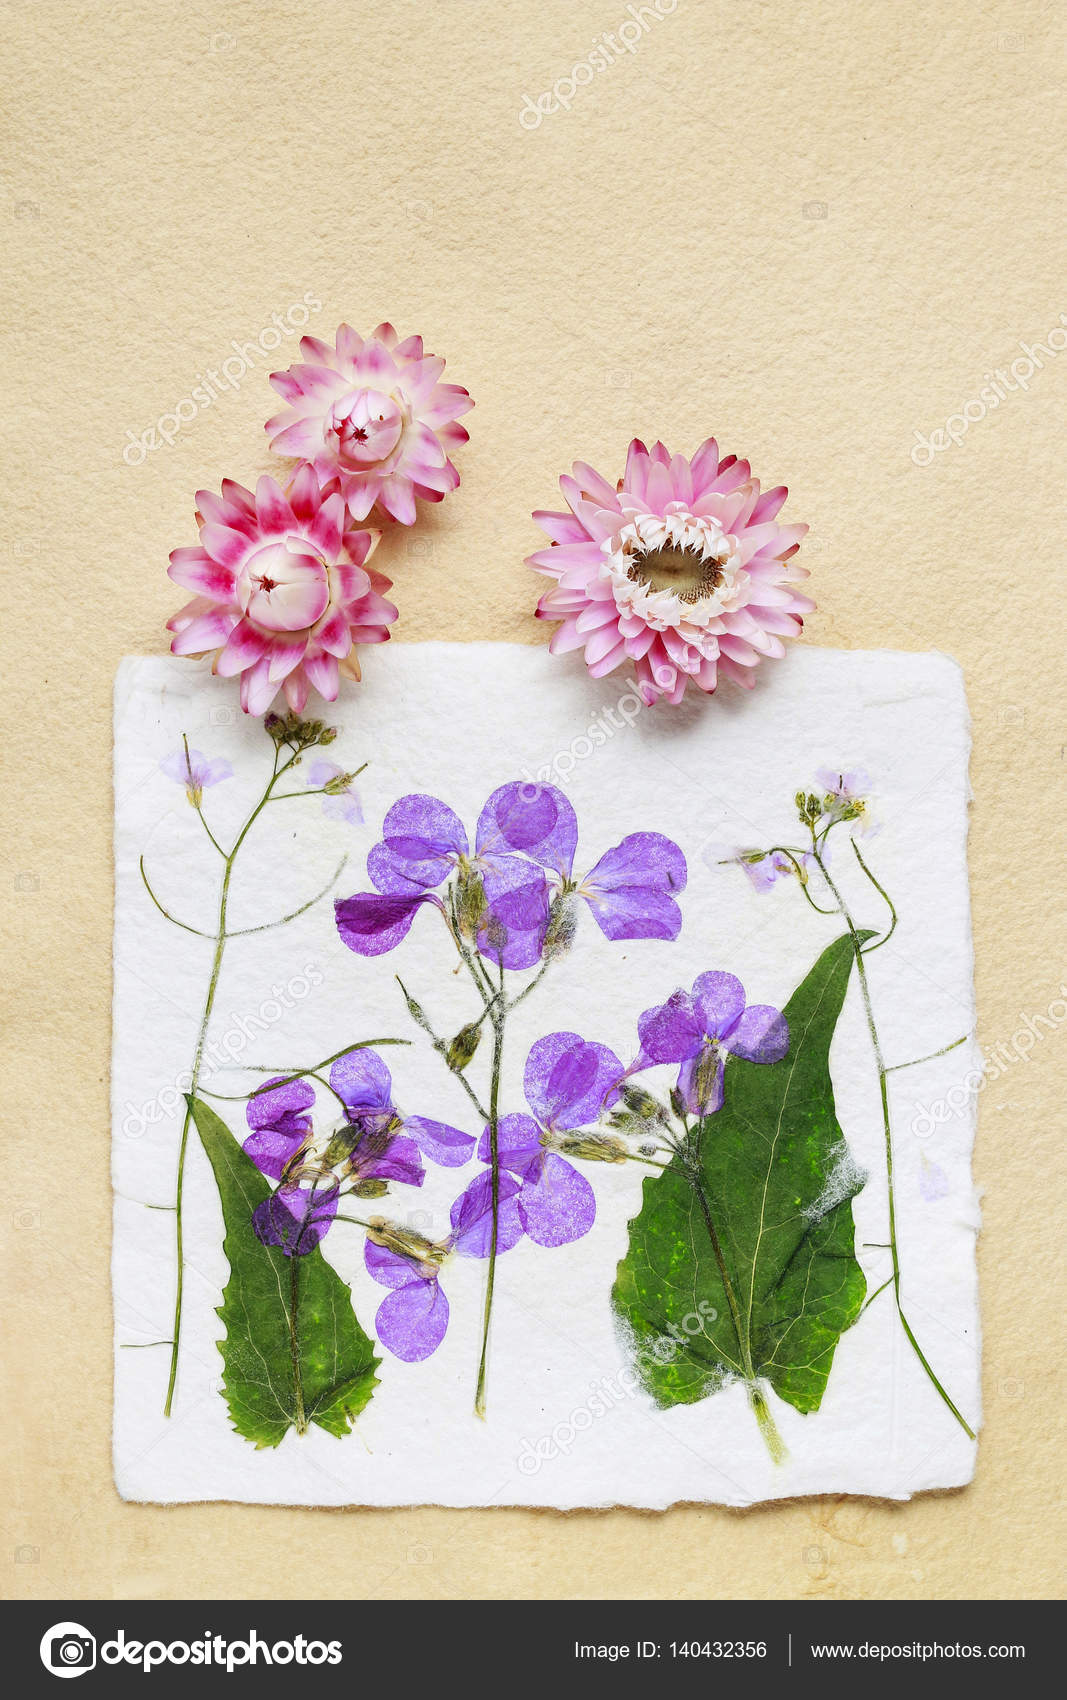 Dried Pressed Flowers On Vintage Paper Background Stock Photo